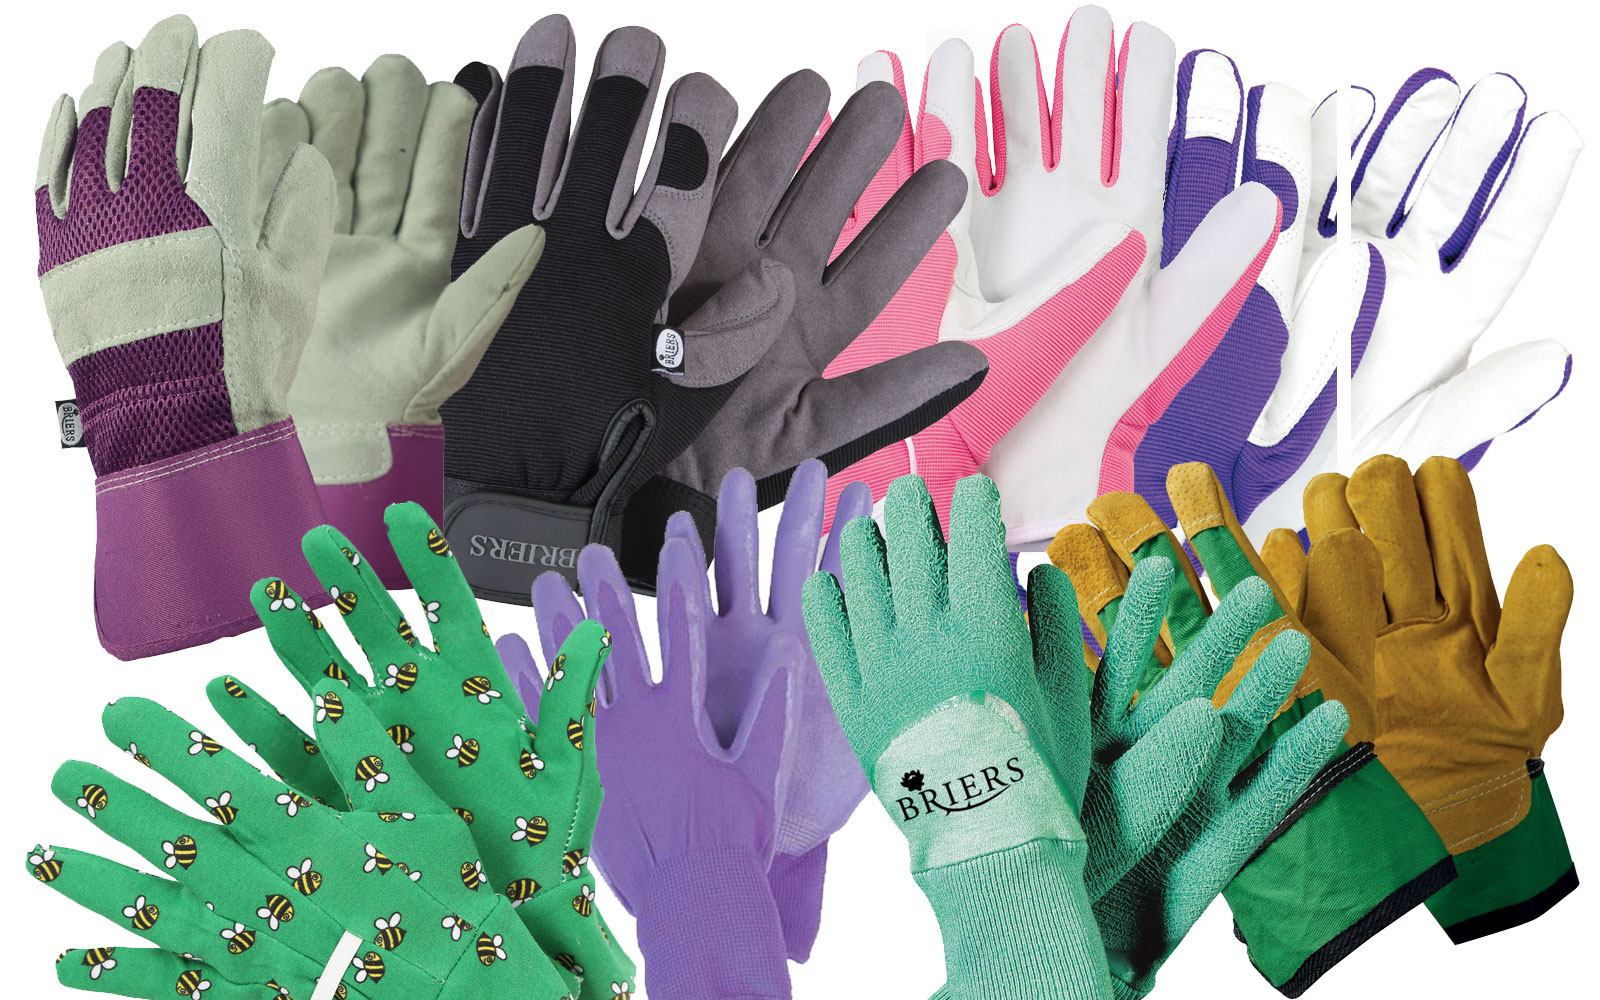 Briers ladies high quality gardening gloves all rounders for Gardening gloves ladies